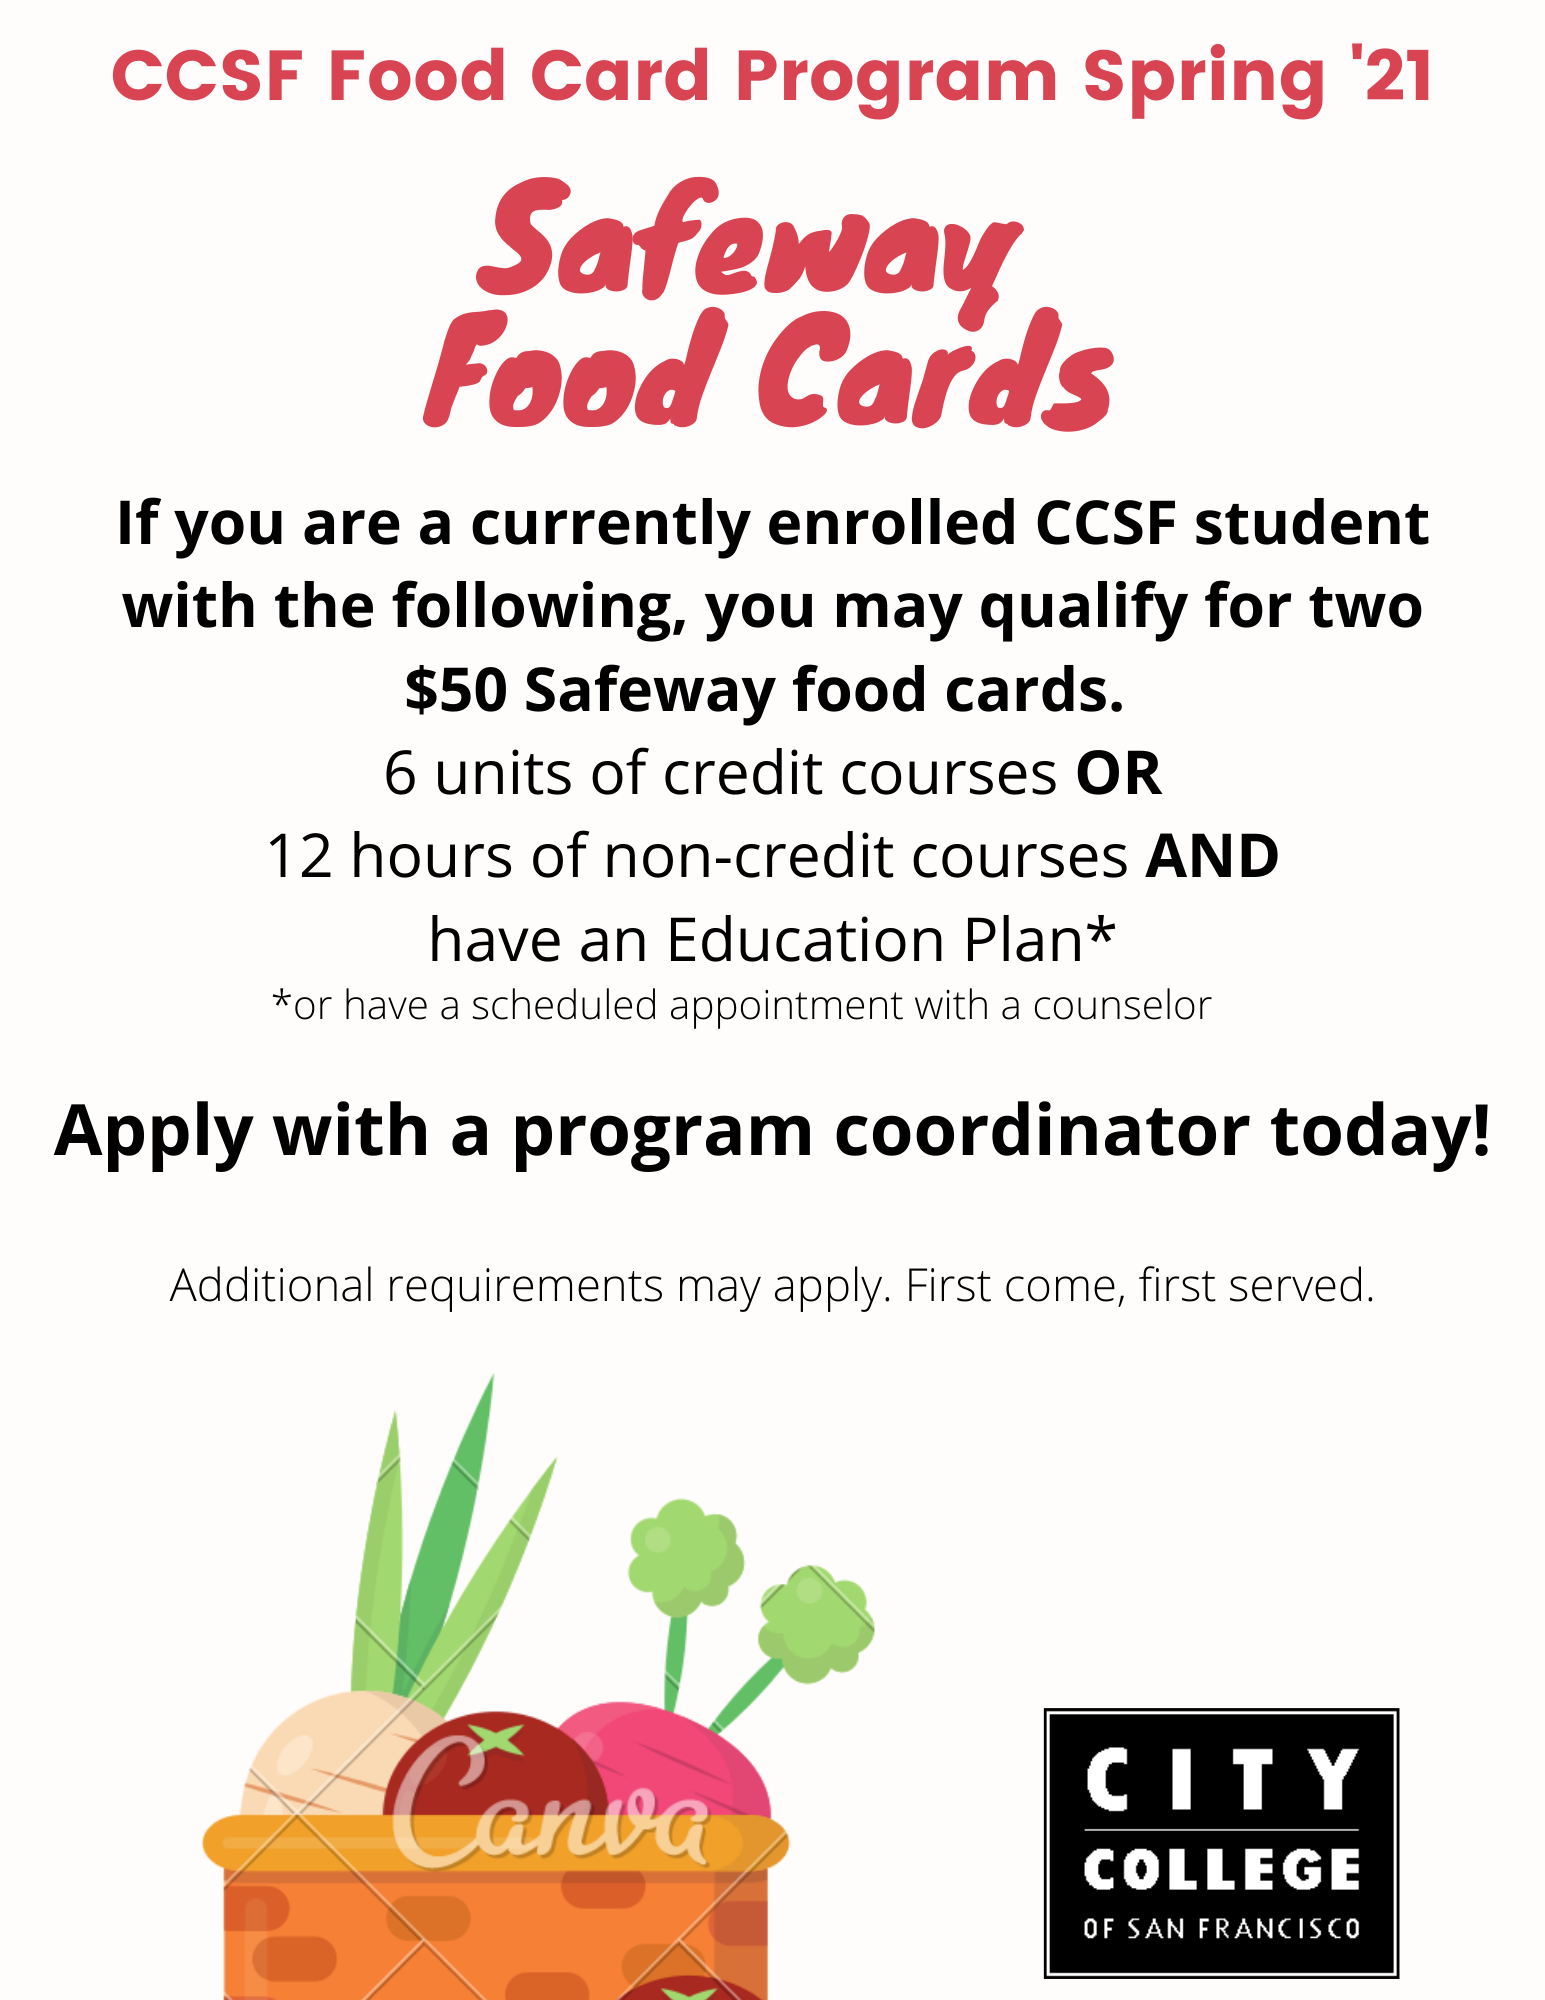 Food Cards Available for Spring 2021. To be eligible you must have 6 credit units or 12 hours of non-credit coursework and a current education plan. We will also accept a meeting with a counselor to create or update an educational plan. For more details, virtually visit one of our participating programs. Program is first-come, first-served. Additional requirements may apply.